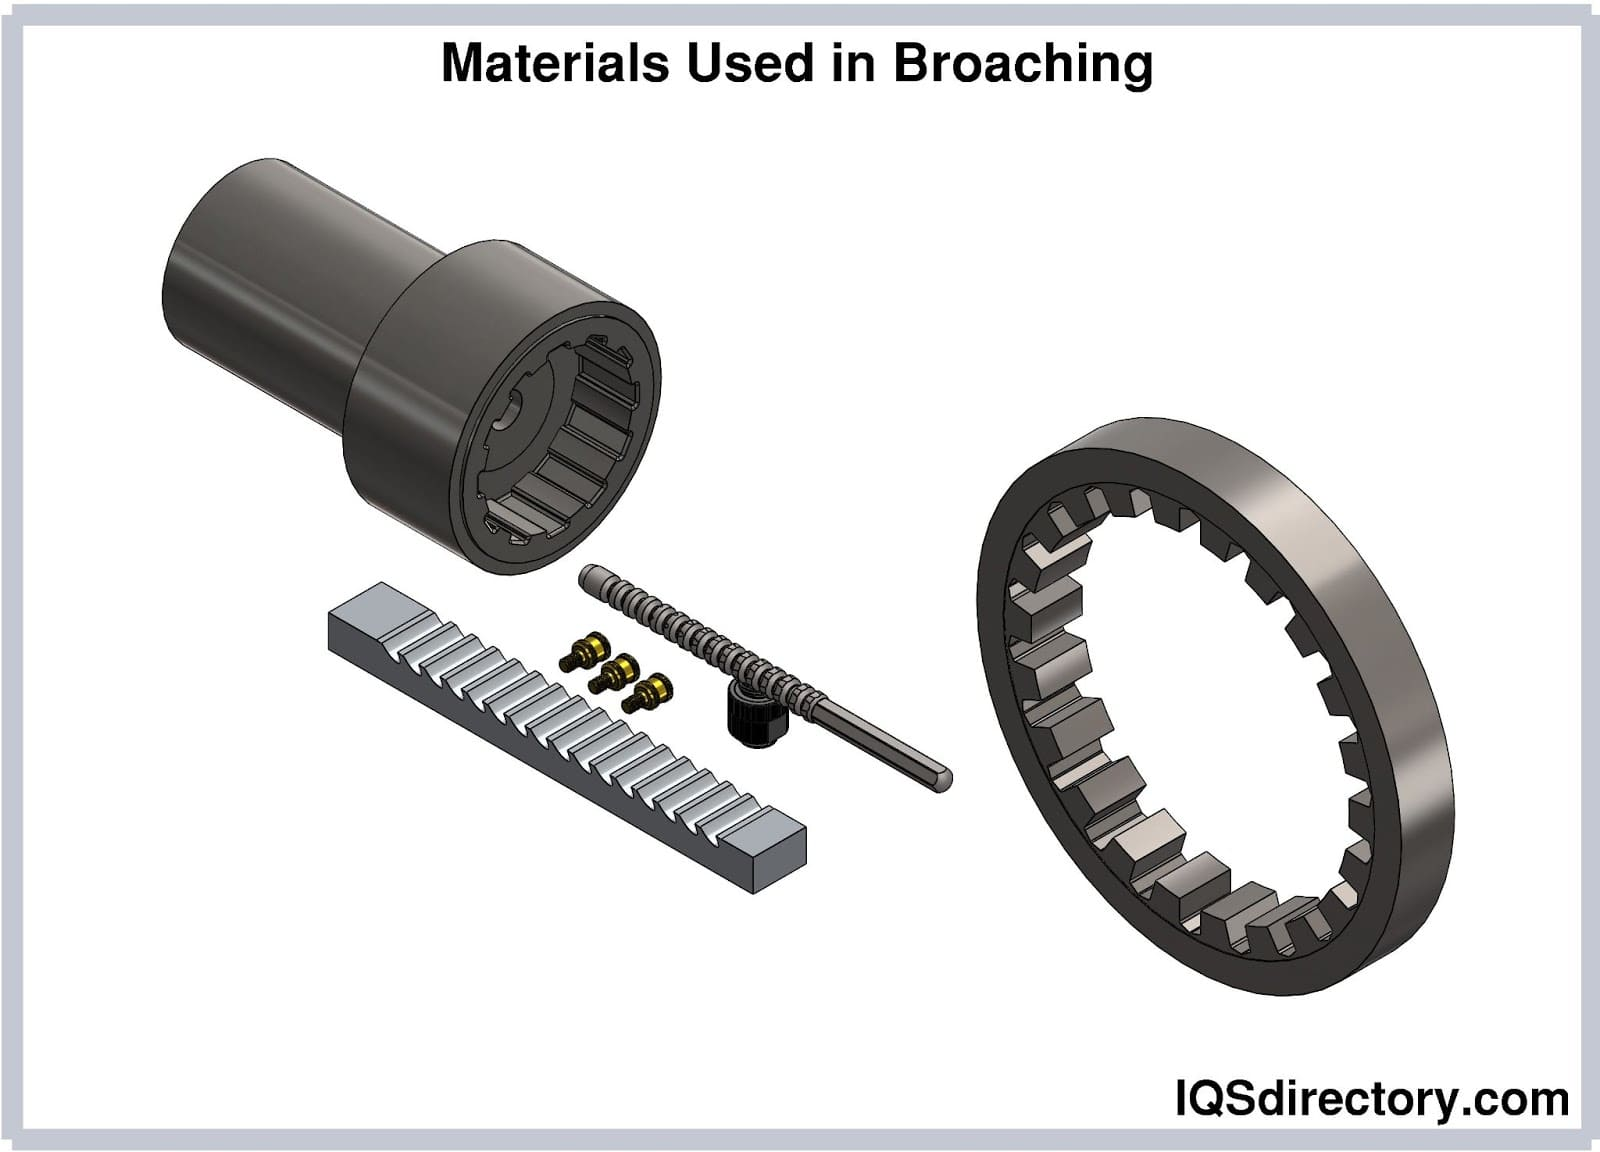 Materials Used in Broaching